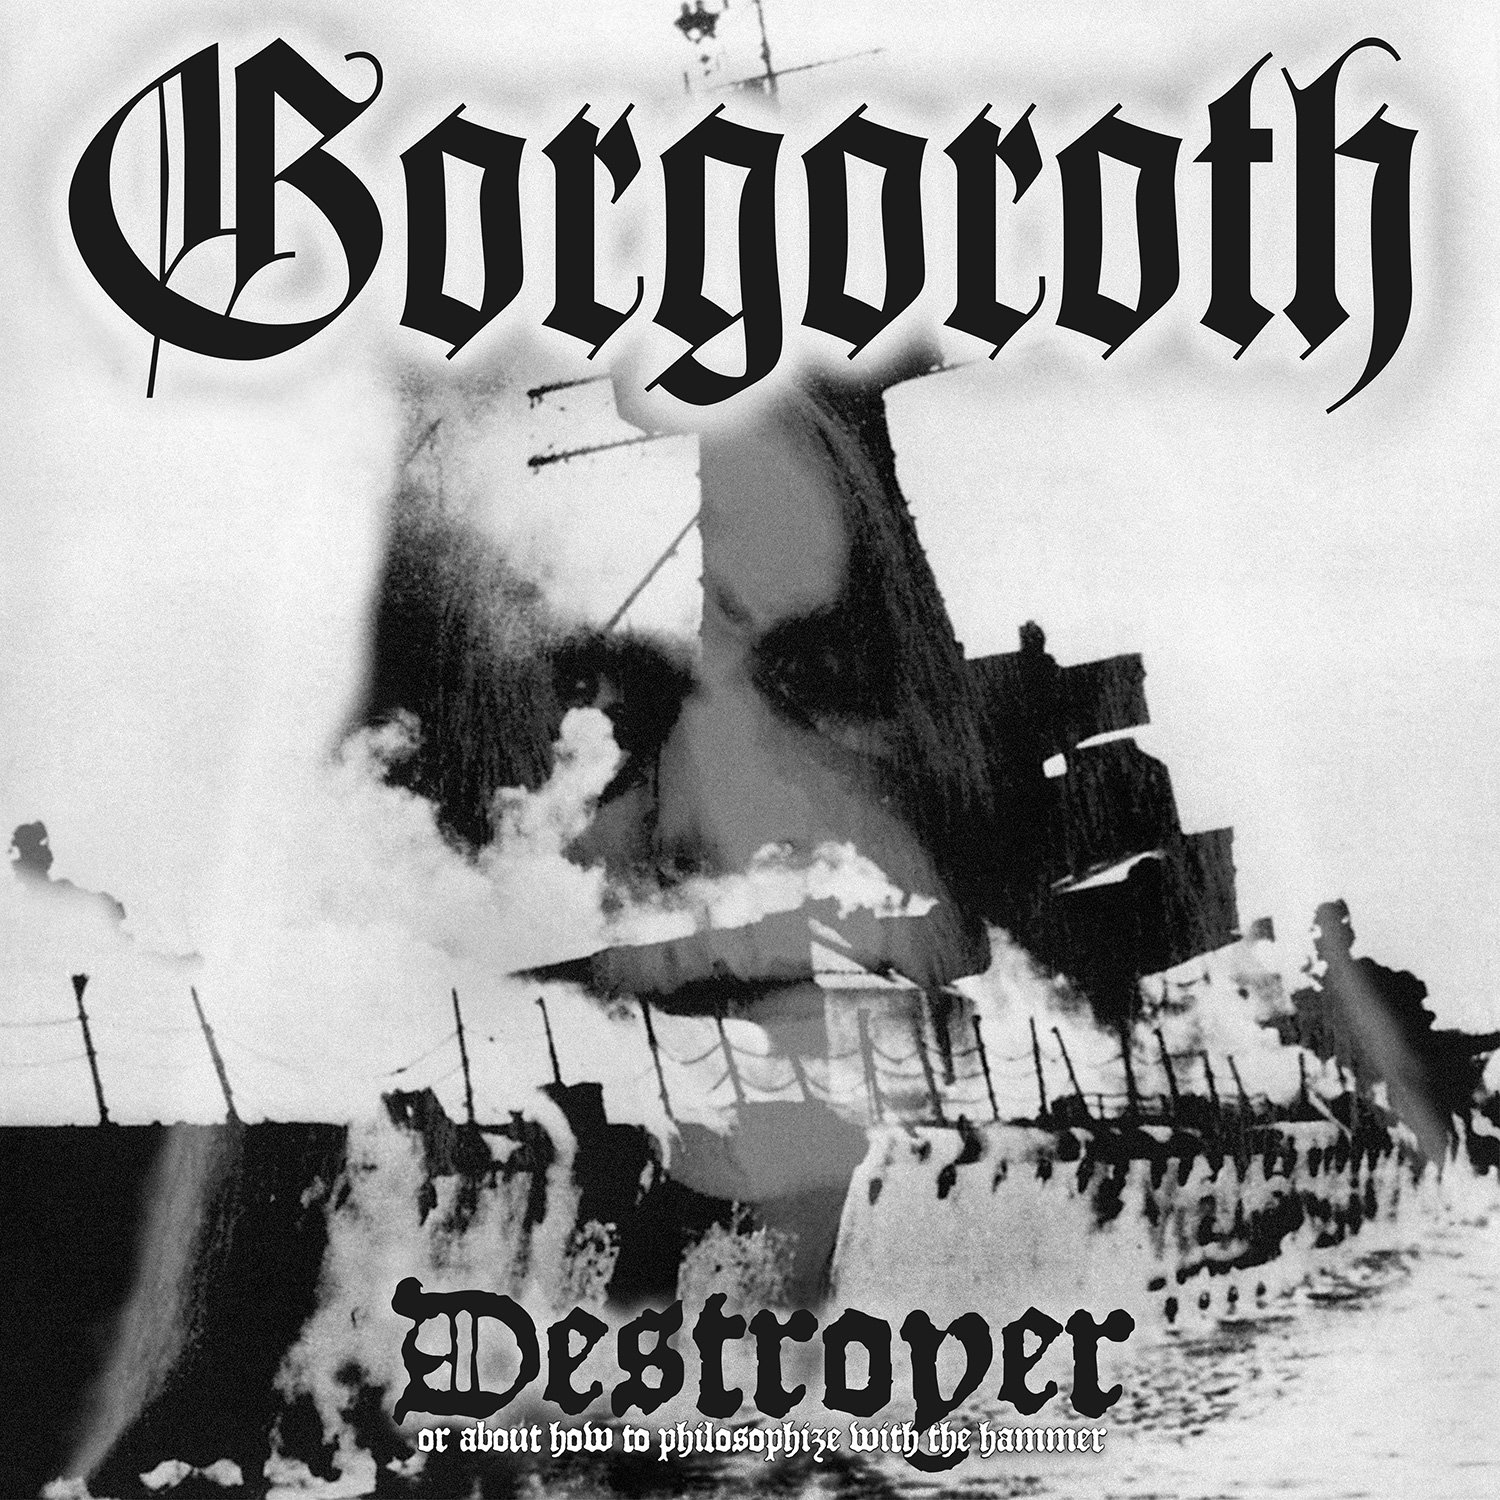 Vinilo : Gorgoroth - Destroyer (LP Vinyl)